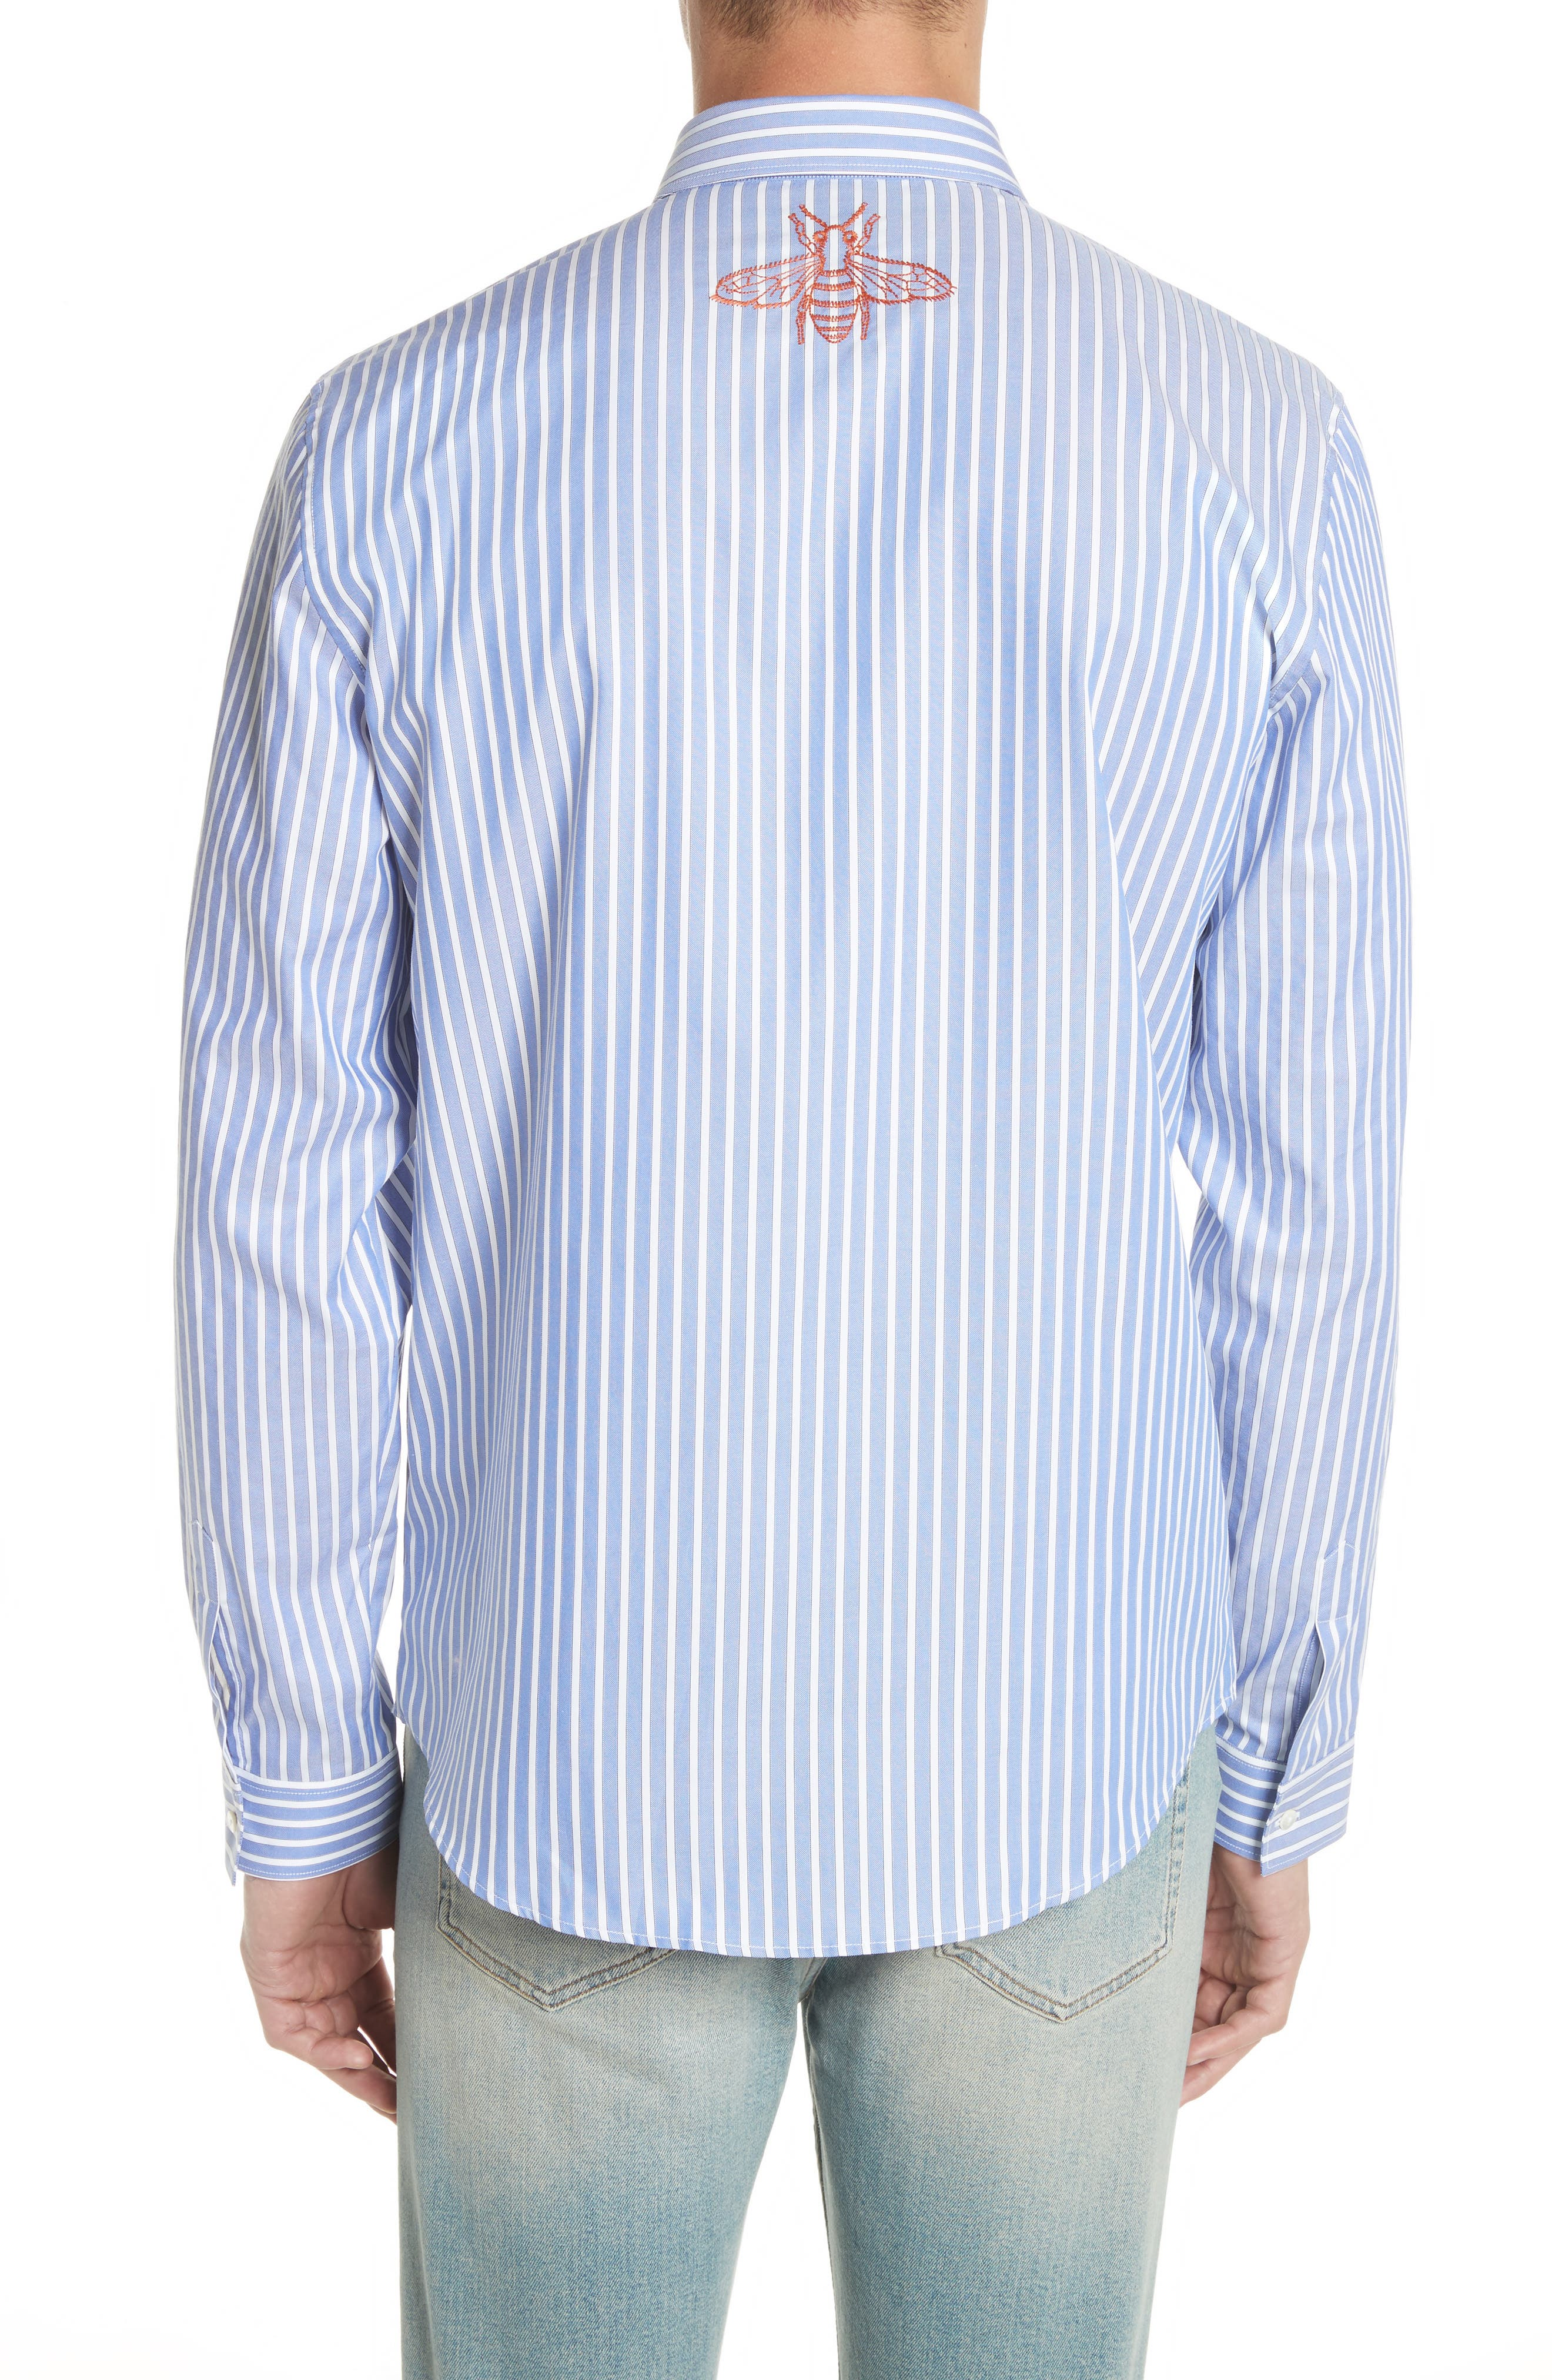 Bee Embroidered Stripe Dress Shirt,                             Alternate thumbnail 3, color,                             4869 Blue